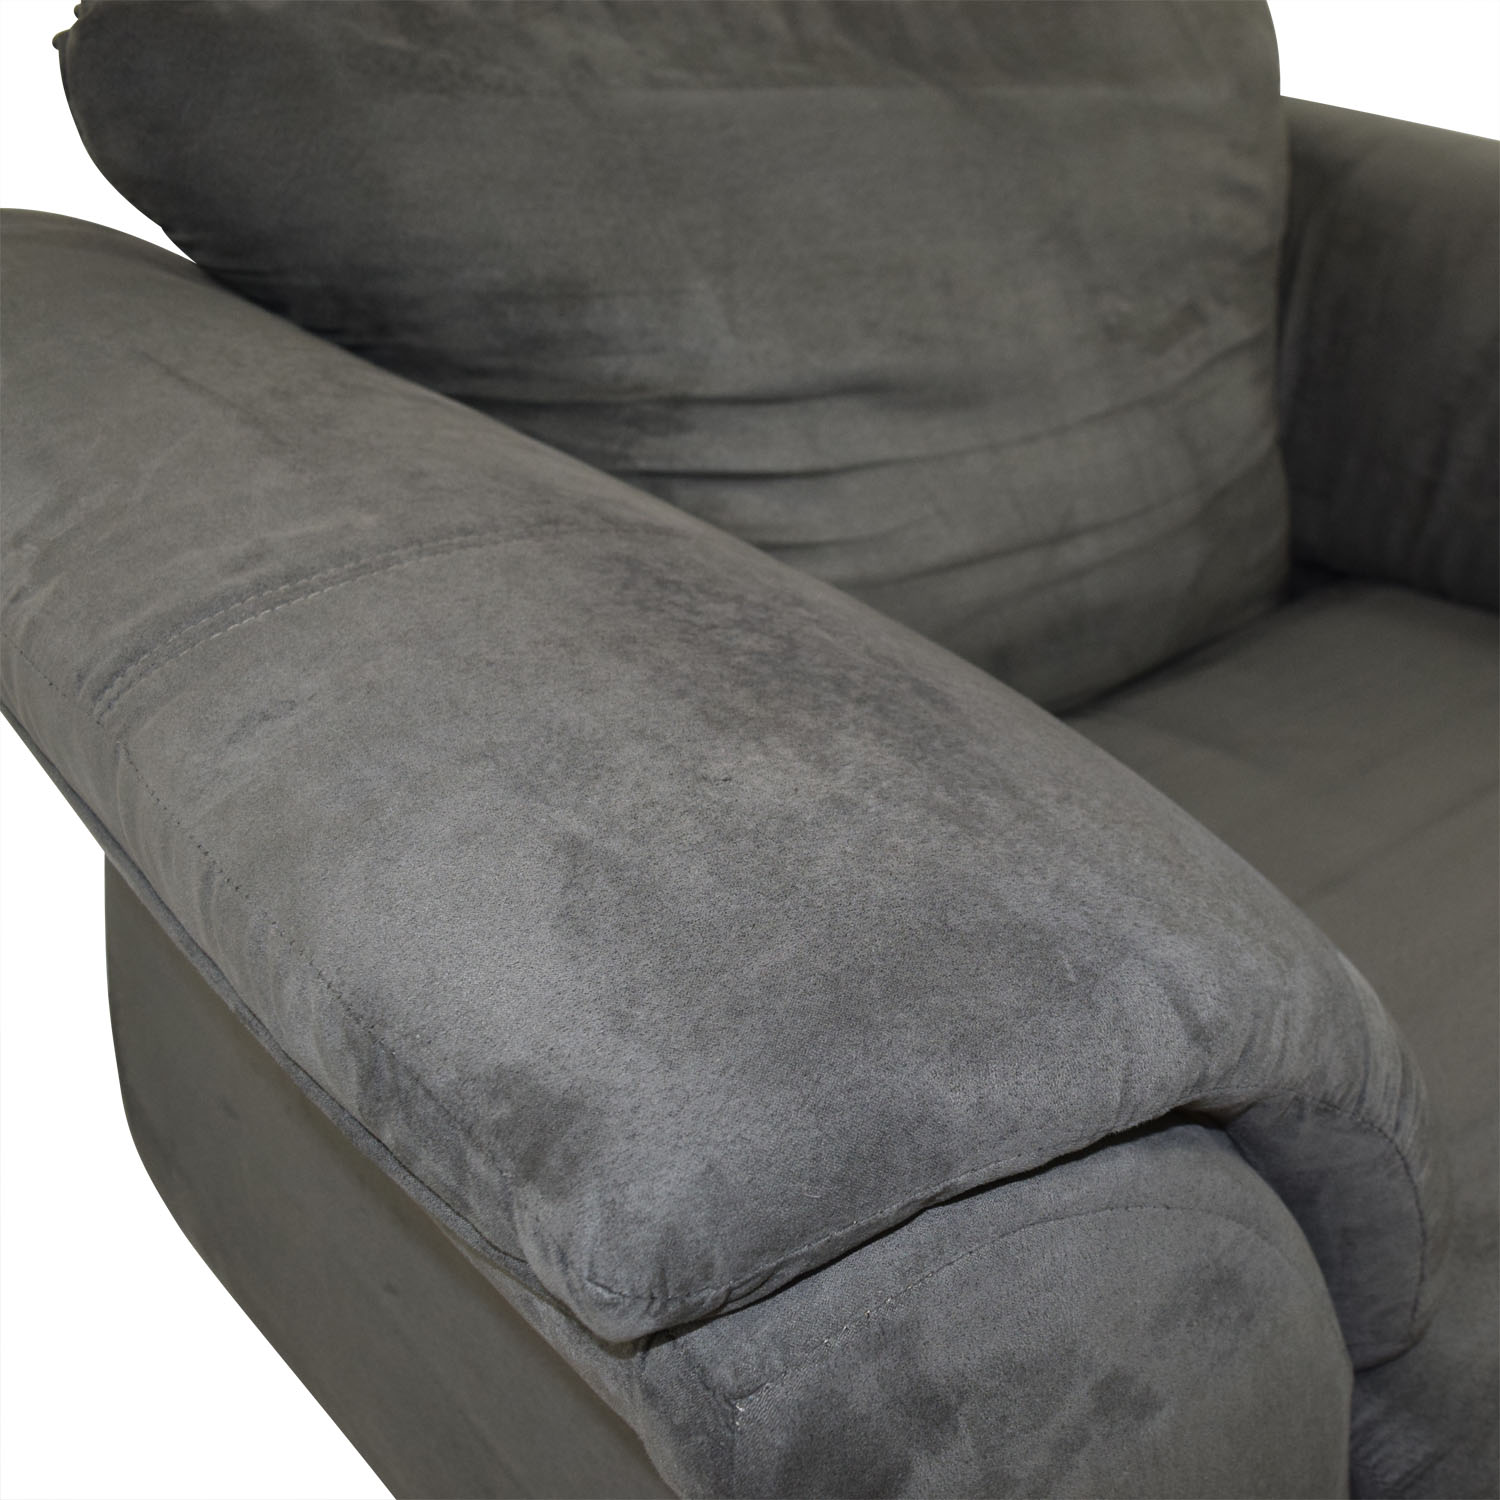 value city furniture accent chairs swivel chair height adjustment 90 off grey loveseat sofas price